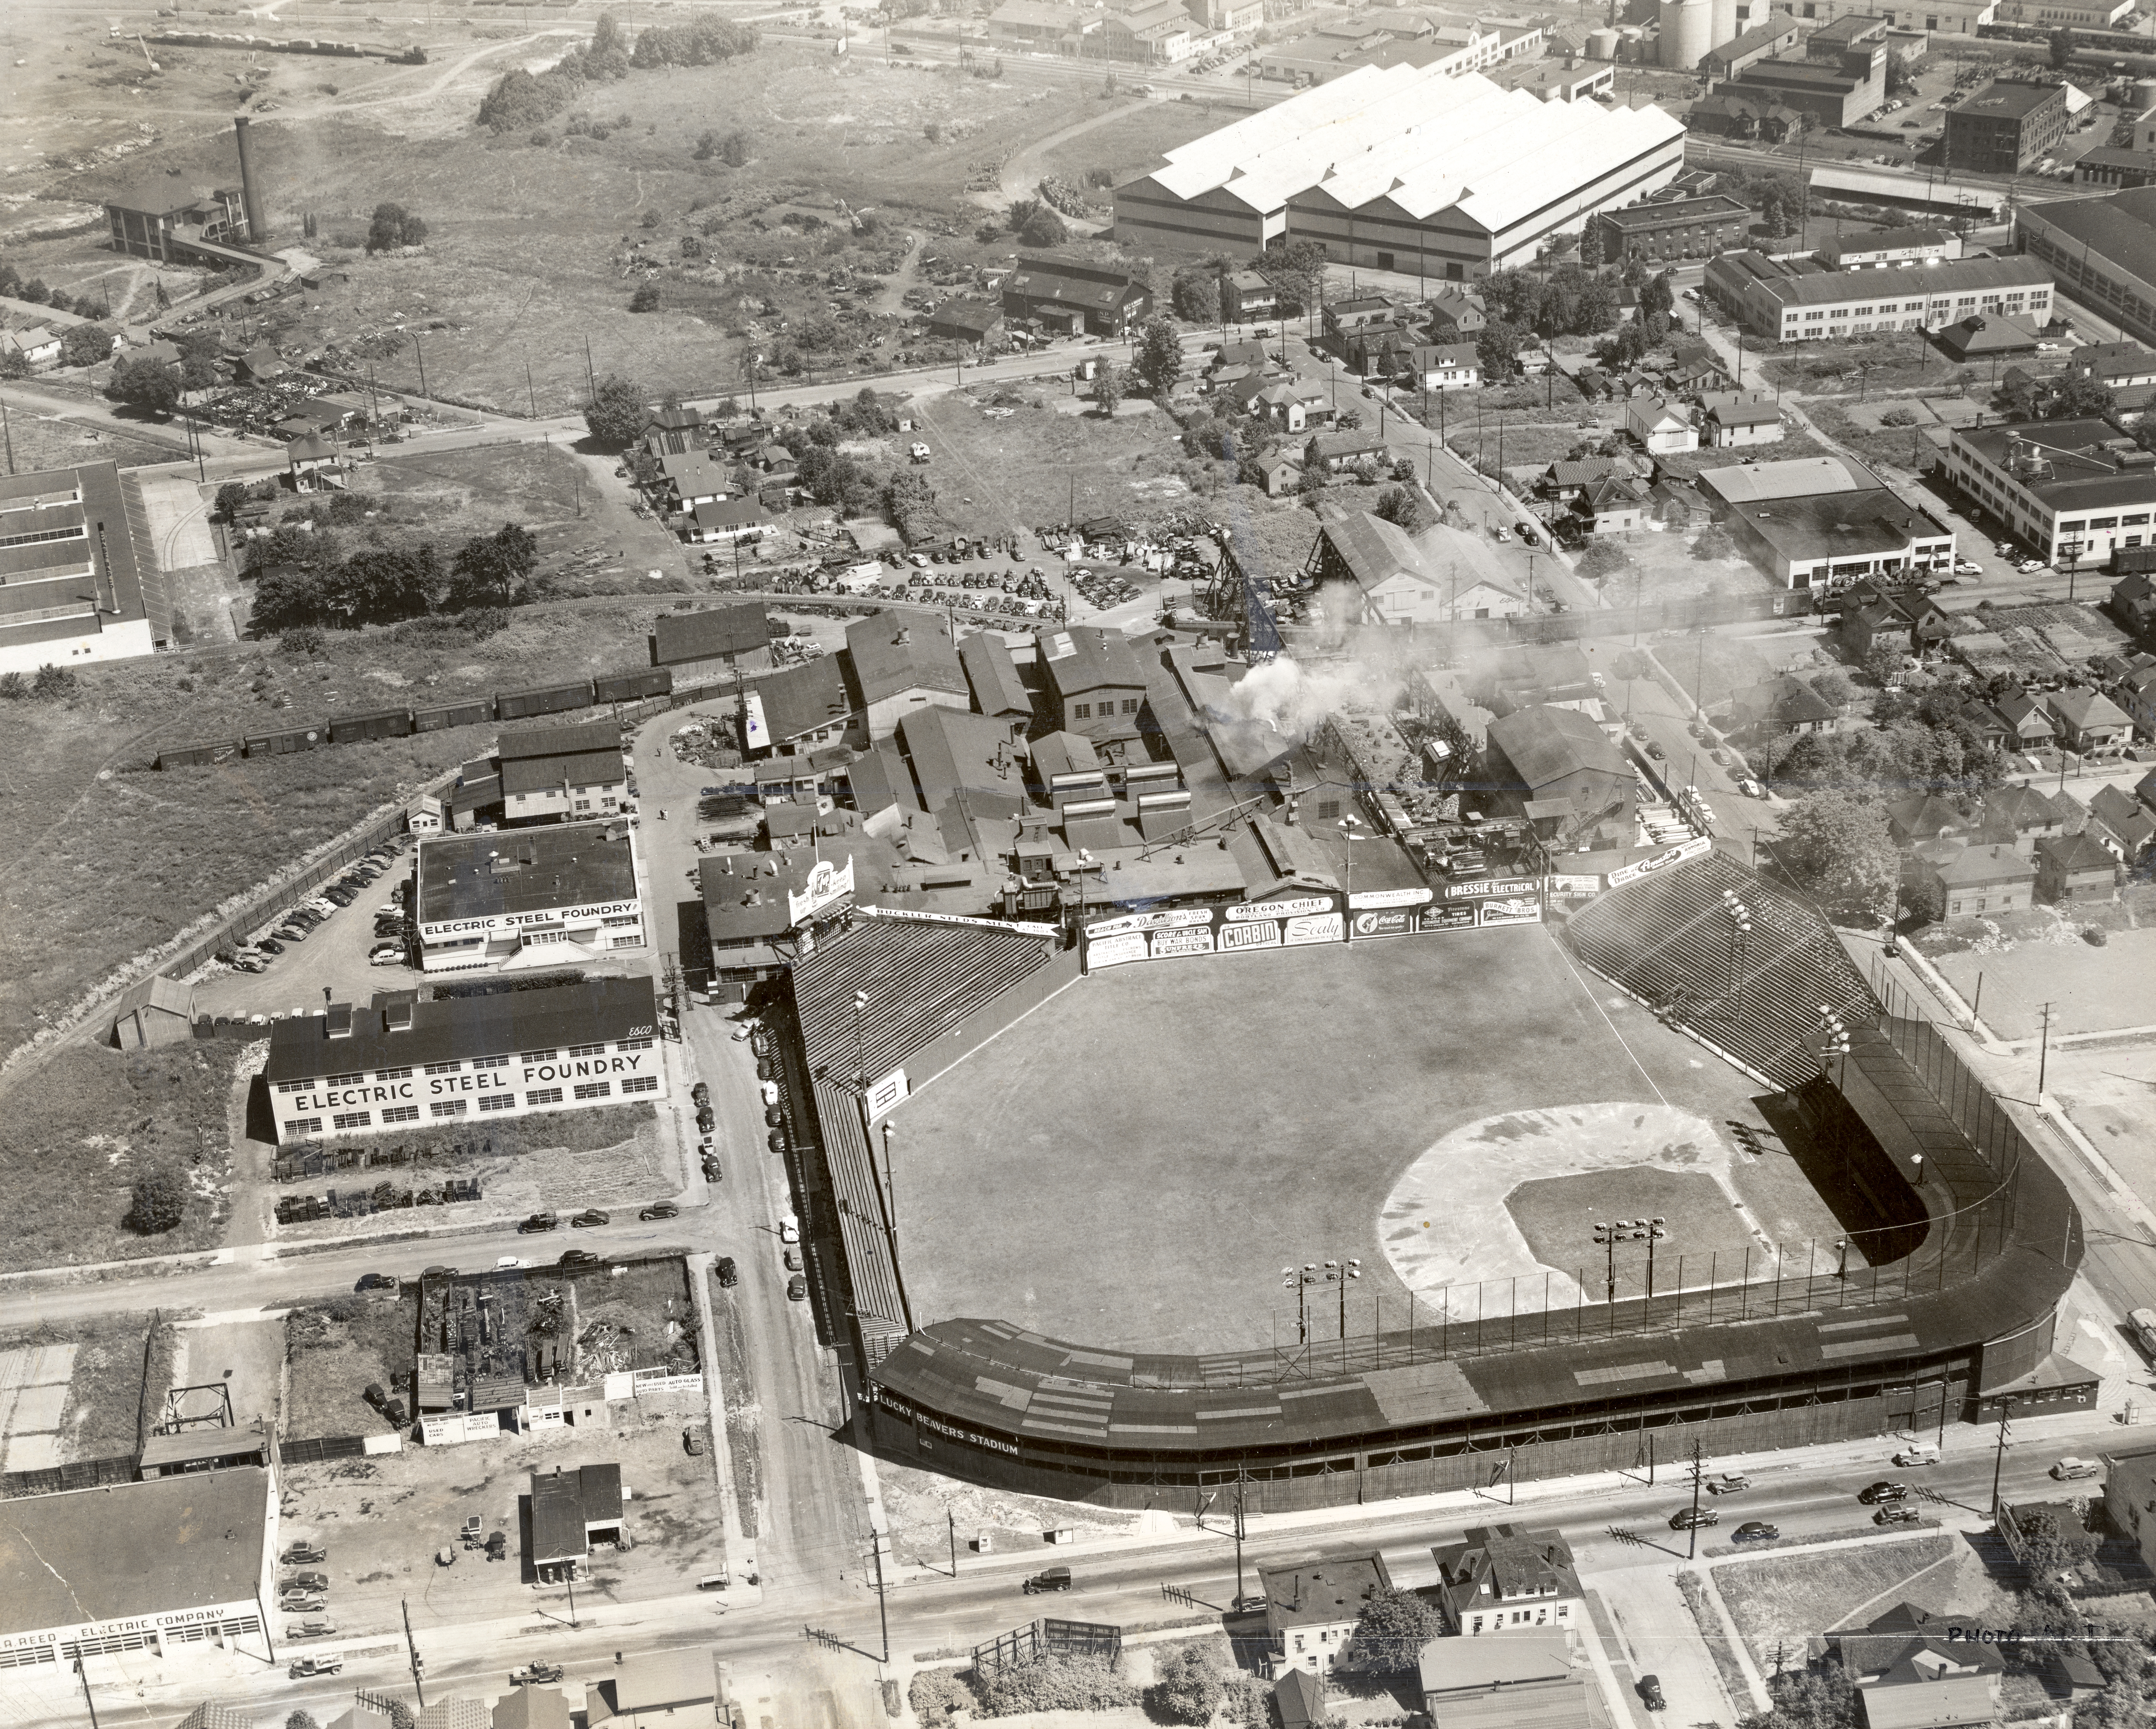 Aerial view of the Vaughn Street Park at NW 24th & Vaughn St. near the Electric Steel Foundry, Sept. 23, 1945.